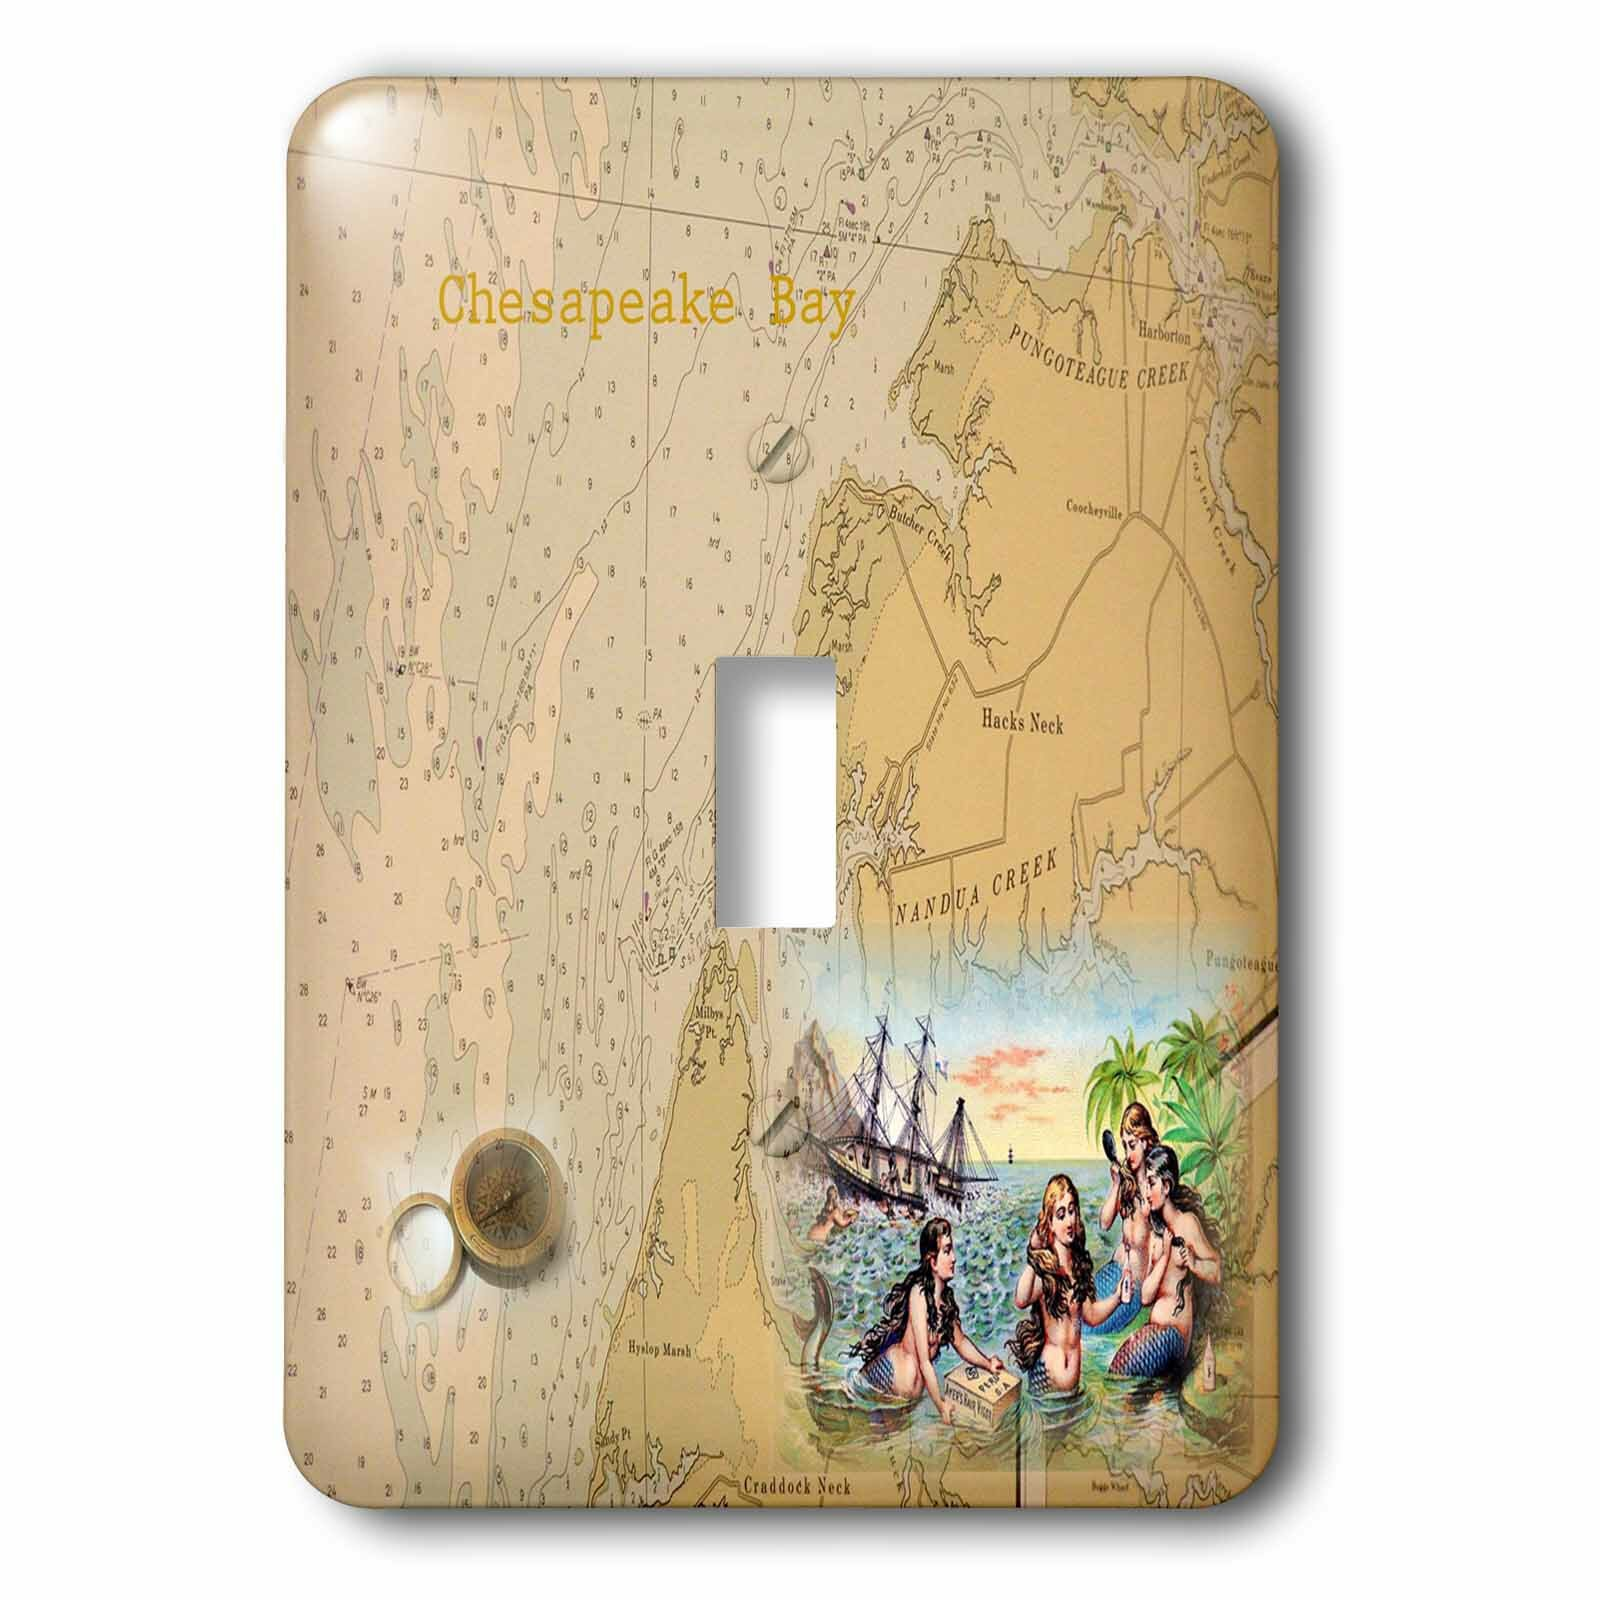 3drose Chesapeake Bay With Mermaids 1 Gang Toggle Light Switch Wall Plate Wayfair